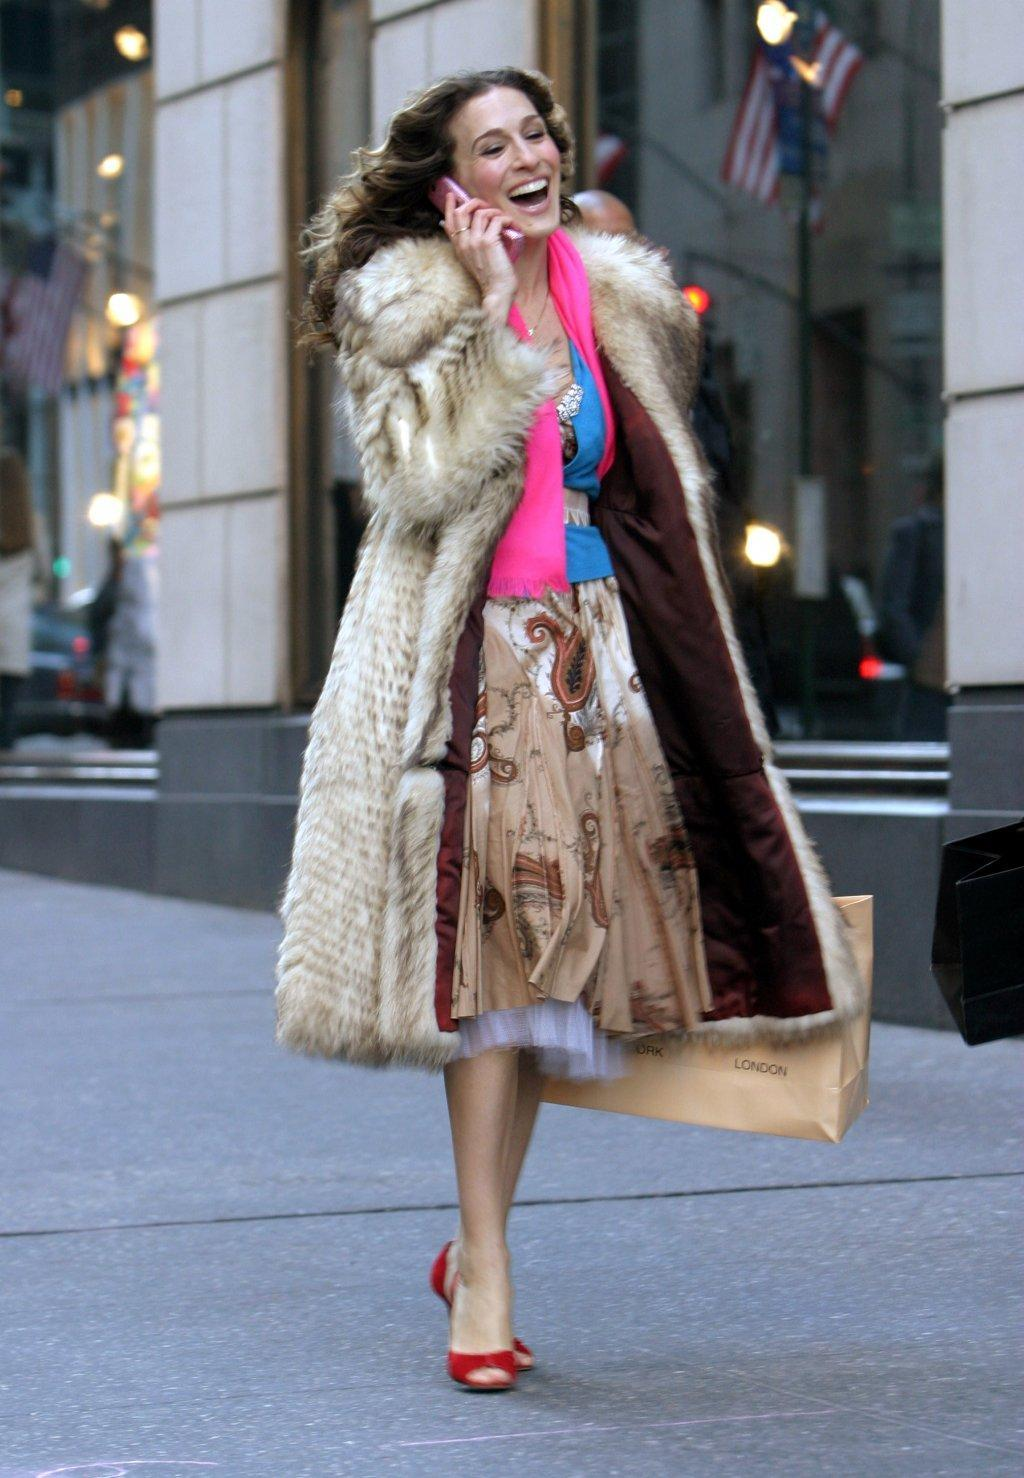 Credit photo: www.lifeandstylemag.com